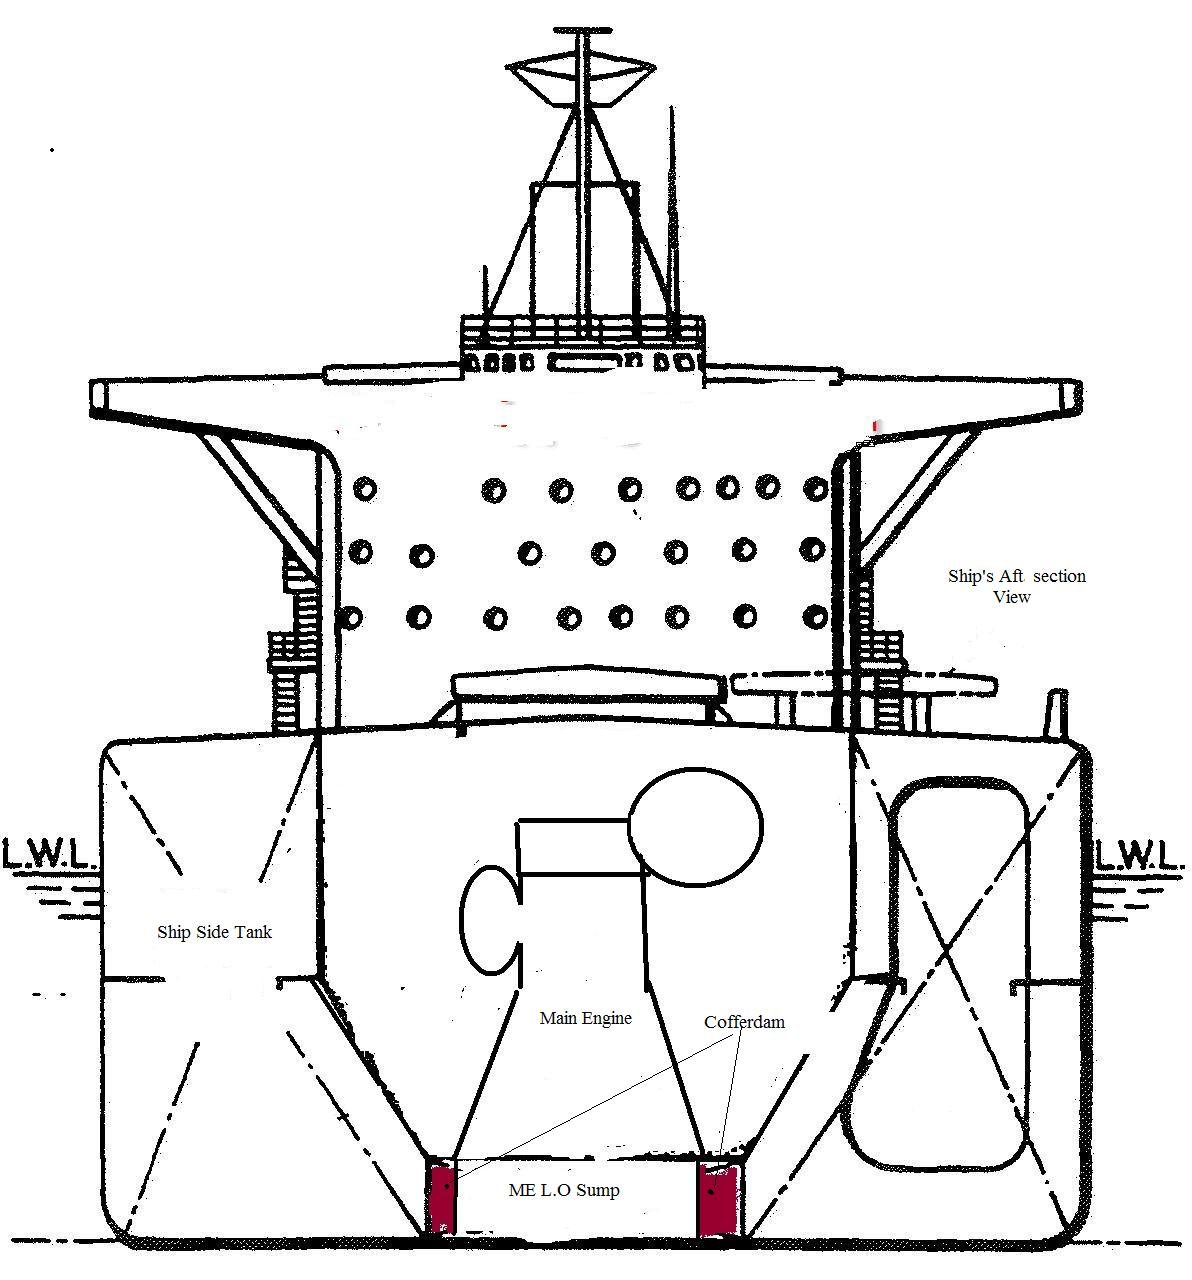 What Is Cofferdam On Ships